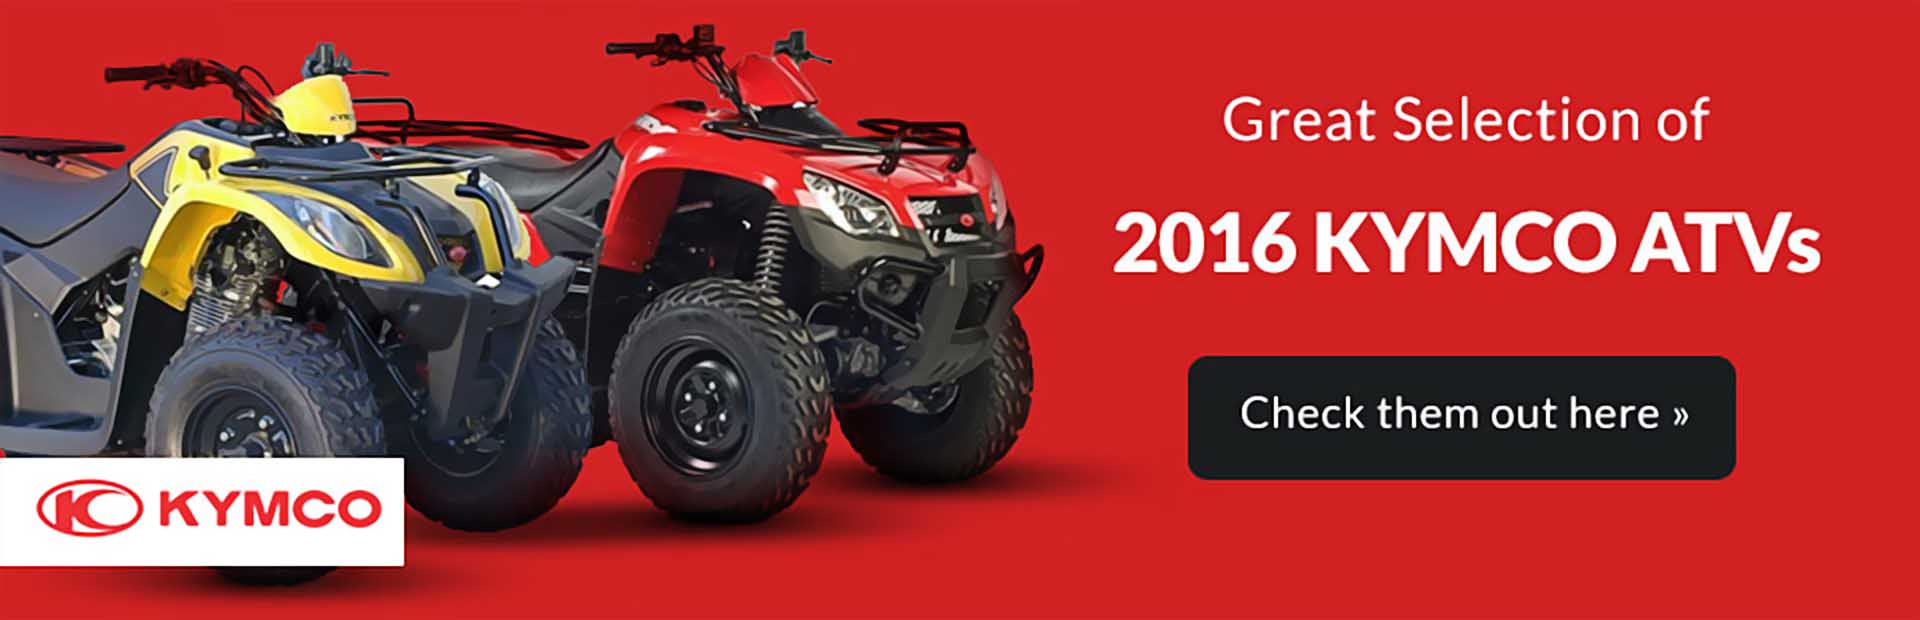 2016 KYMCO ATVs: Click here to view the models.